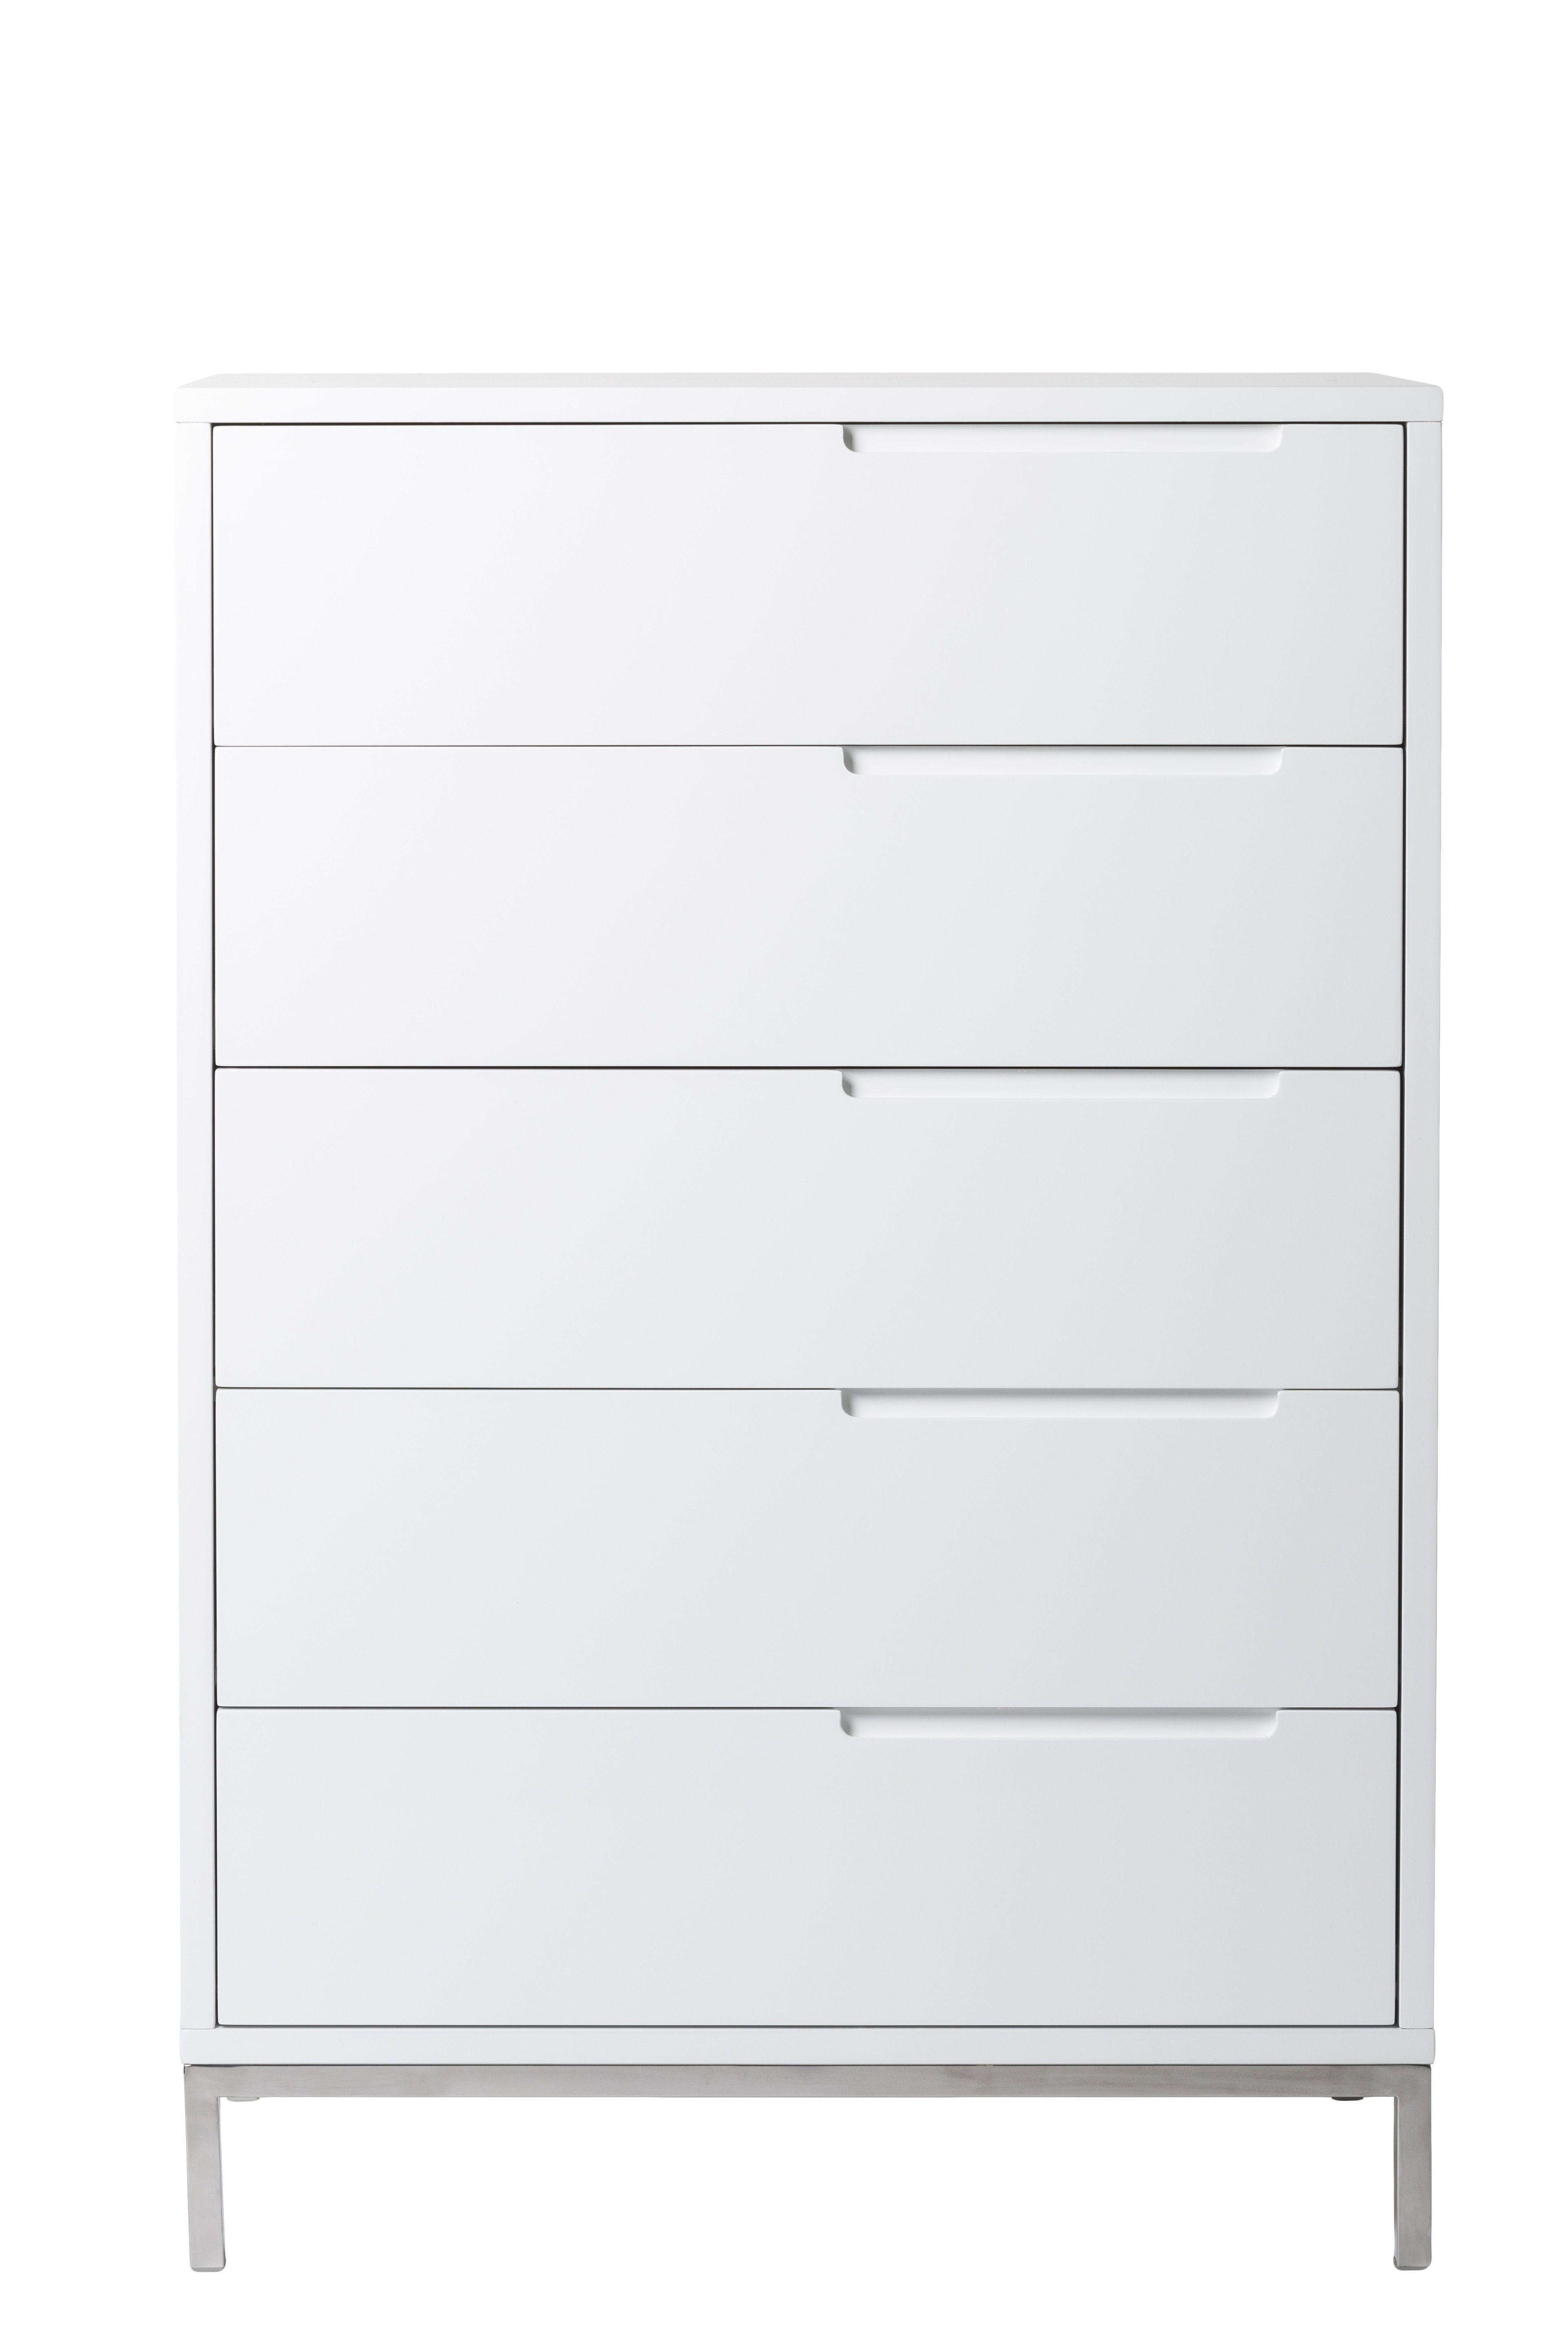 Capriana Tall Dresser White Tall White Dresser Moe S Home Collection Simple Dresser [ 5760 x 3840 Pixel ]